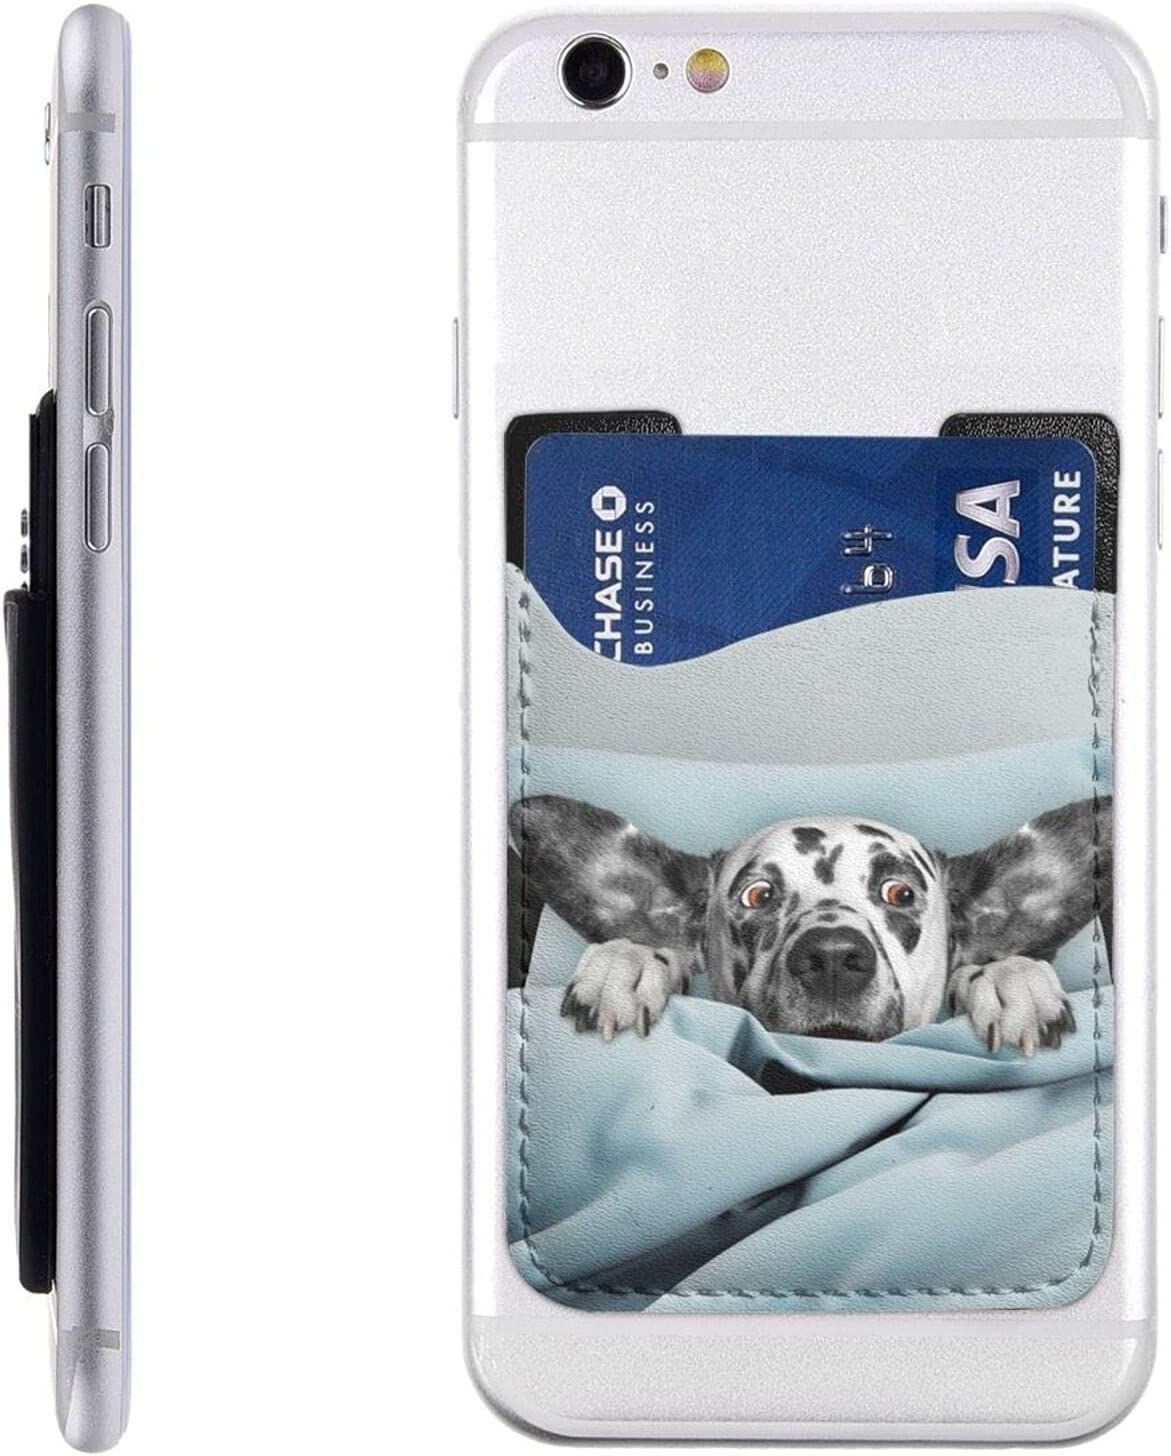 Dog Phone Card Holder Cell Mob Wallet Stick On Challenge the lowest price Manufacturer OFFicial shop of Japan ☆ Sleeve